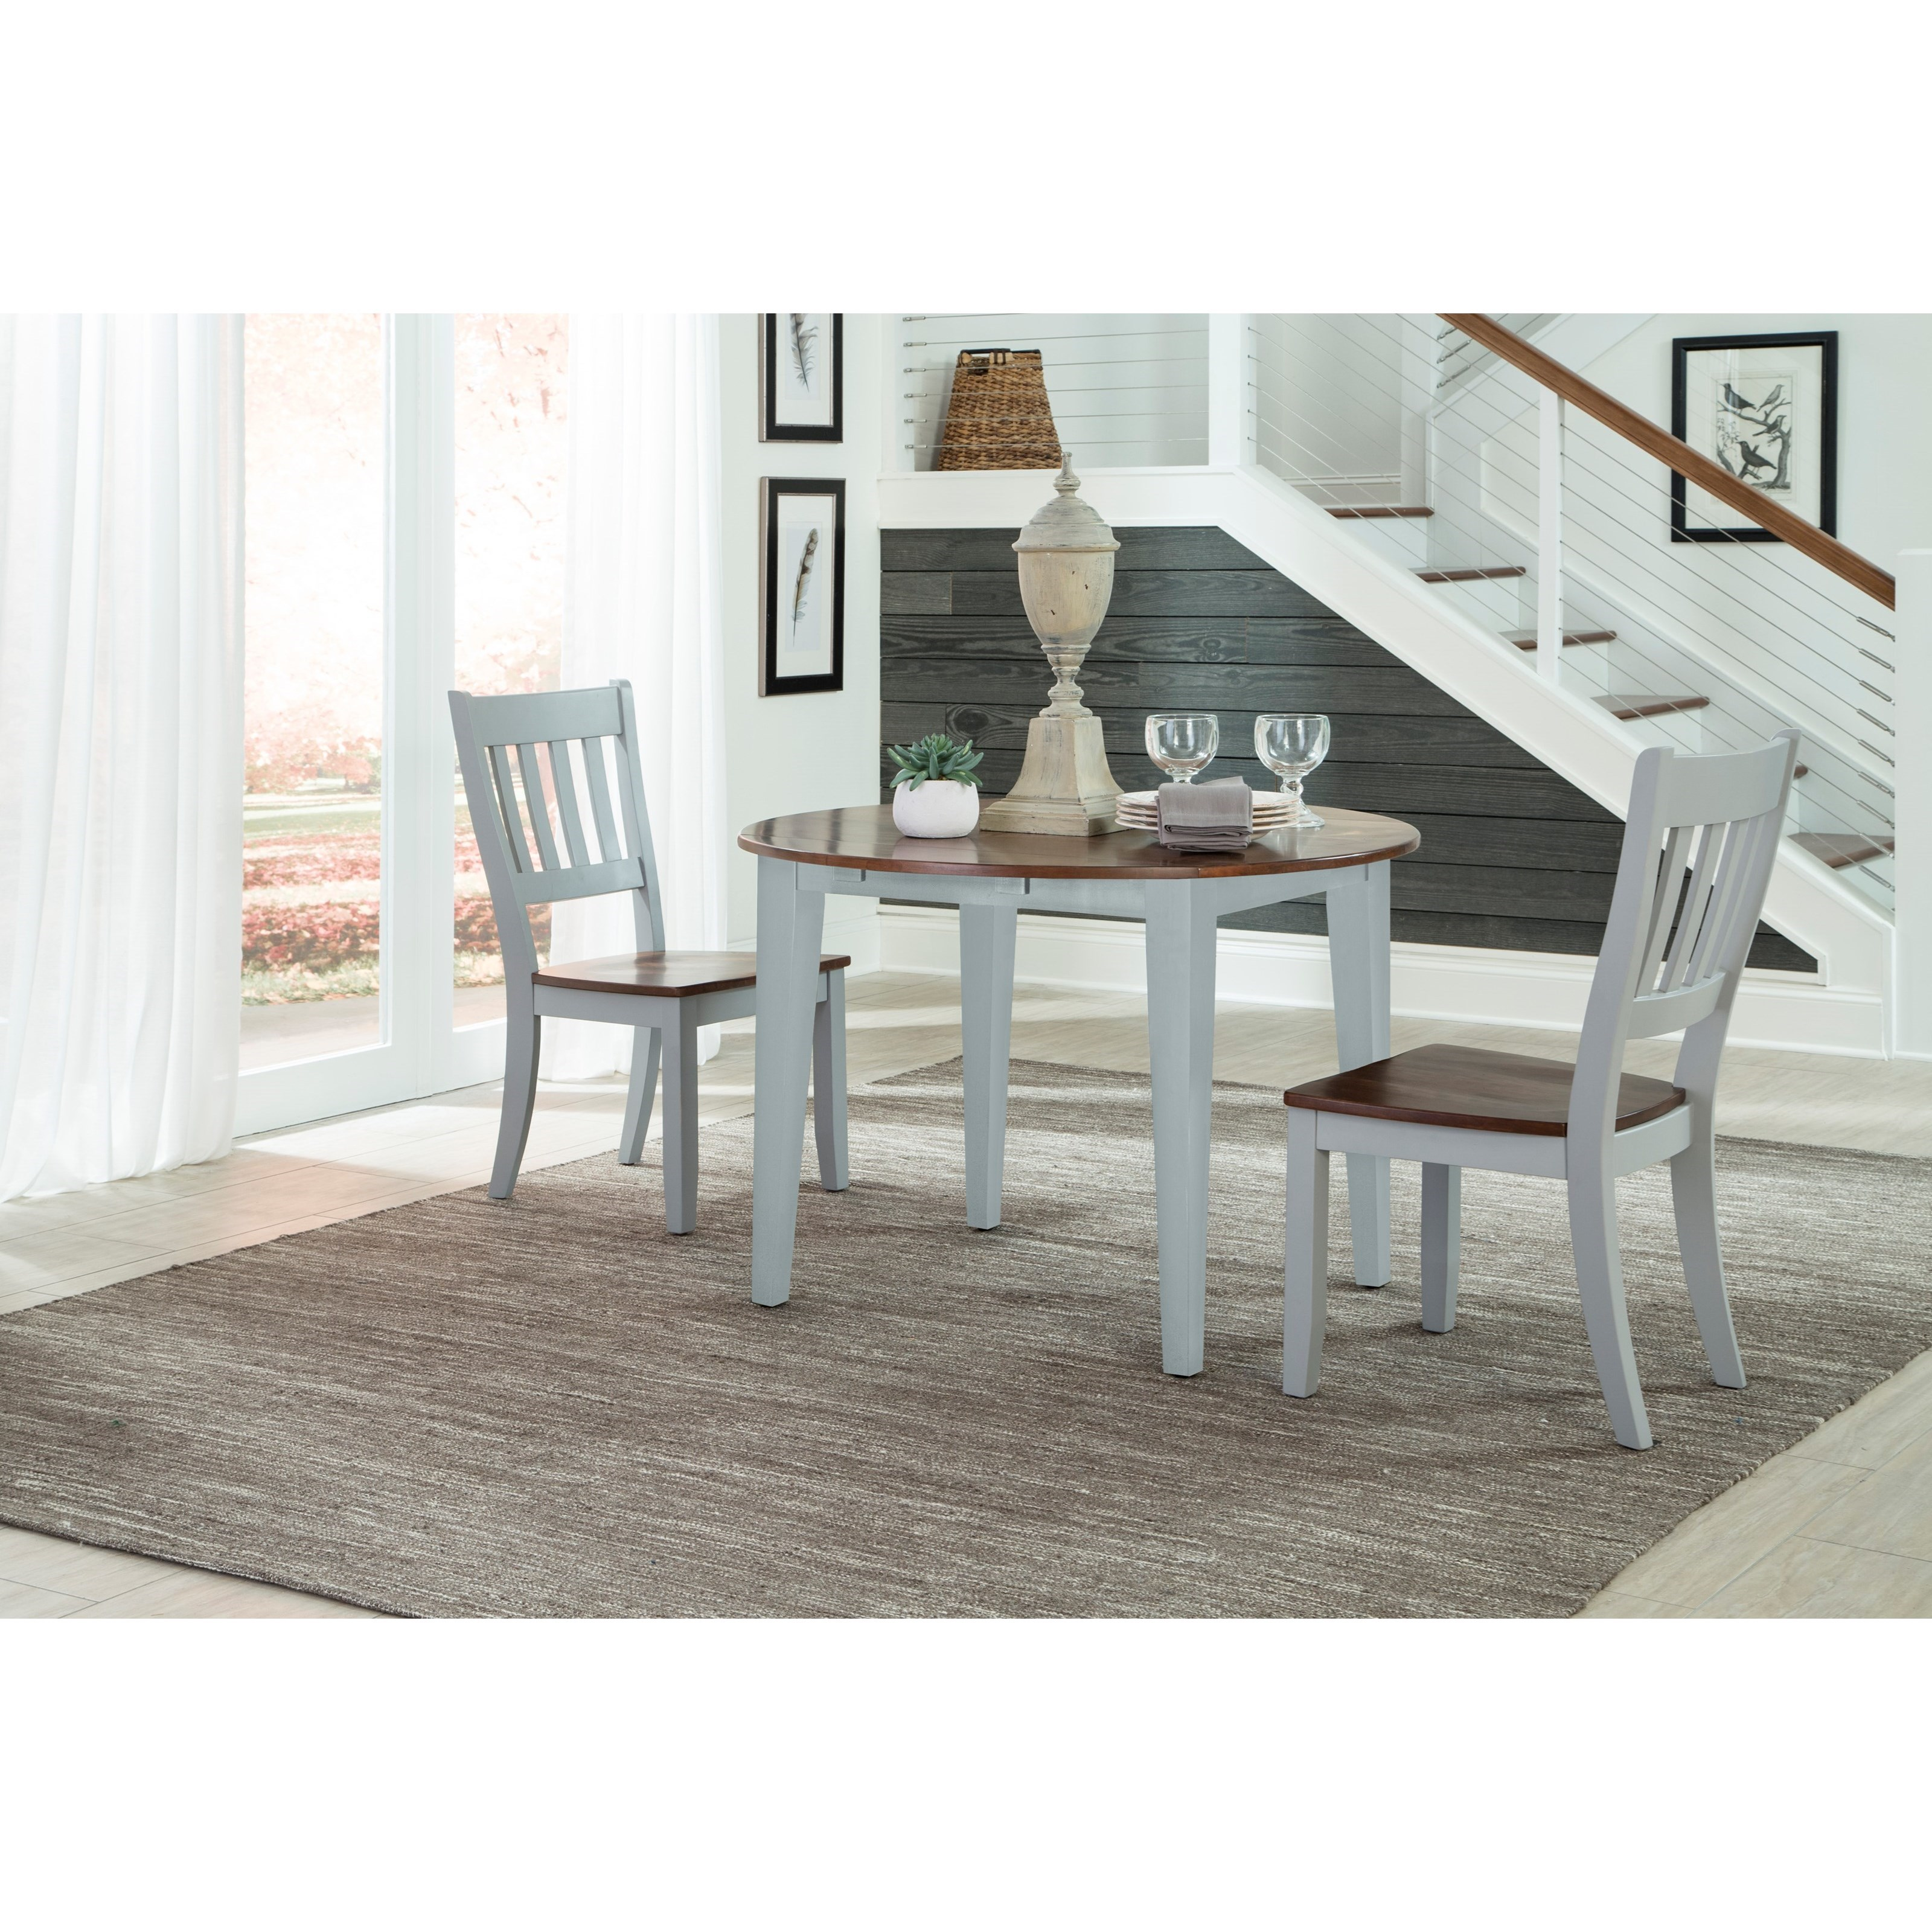 Intercon small space 3 piece drop leaf table and slat back chair set wayside furniture - Piece dining set small spaces plan ...